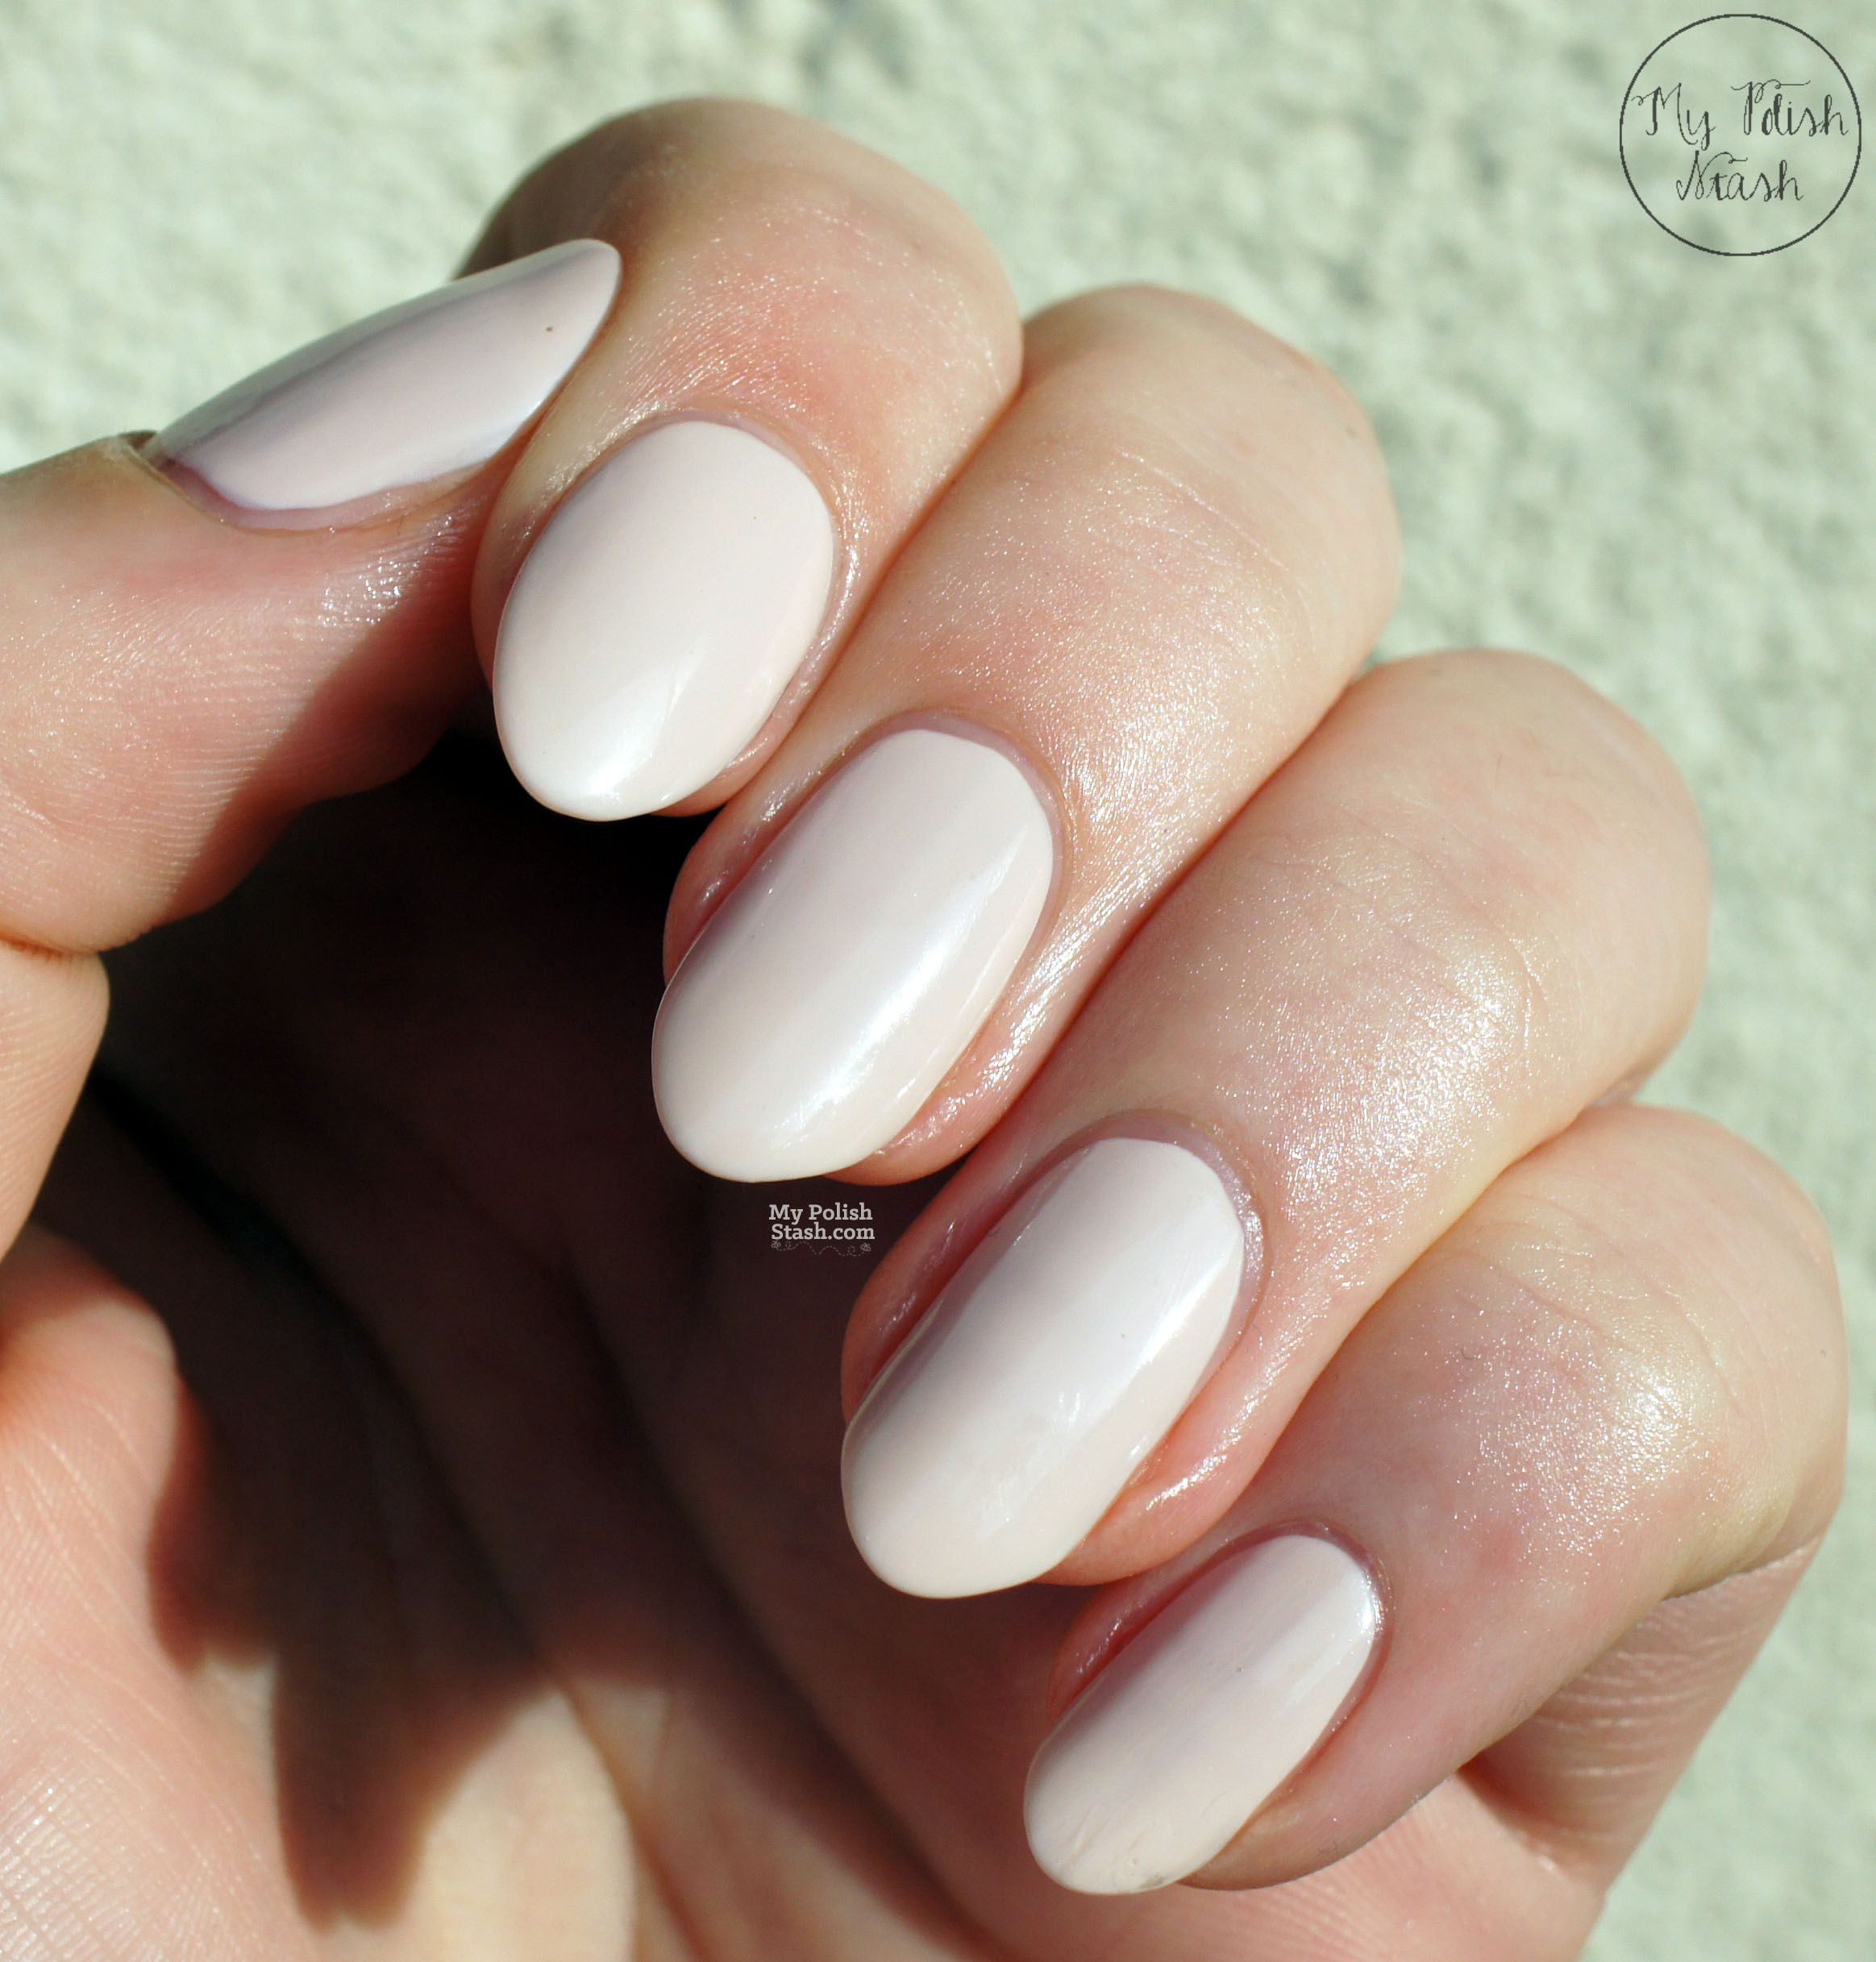 Job Interview Nails: Nails Inc x VVB - Bamboo White | Nail Ideas ...